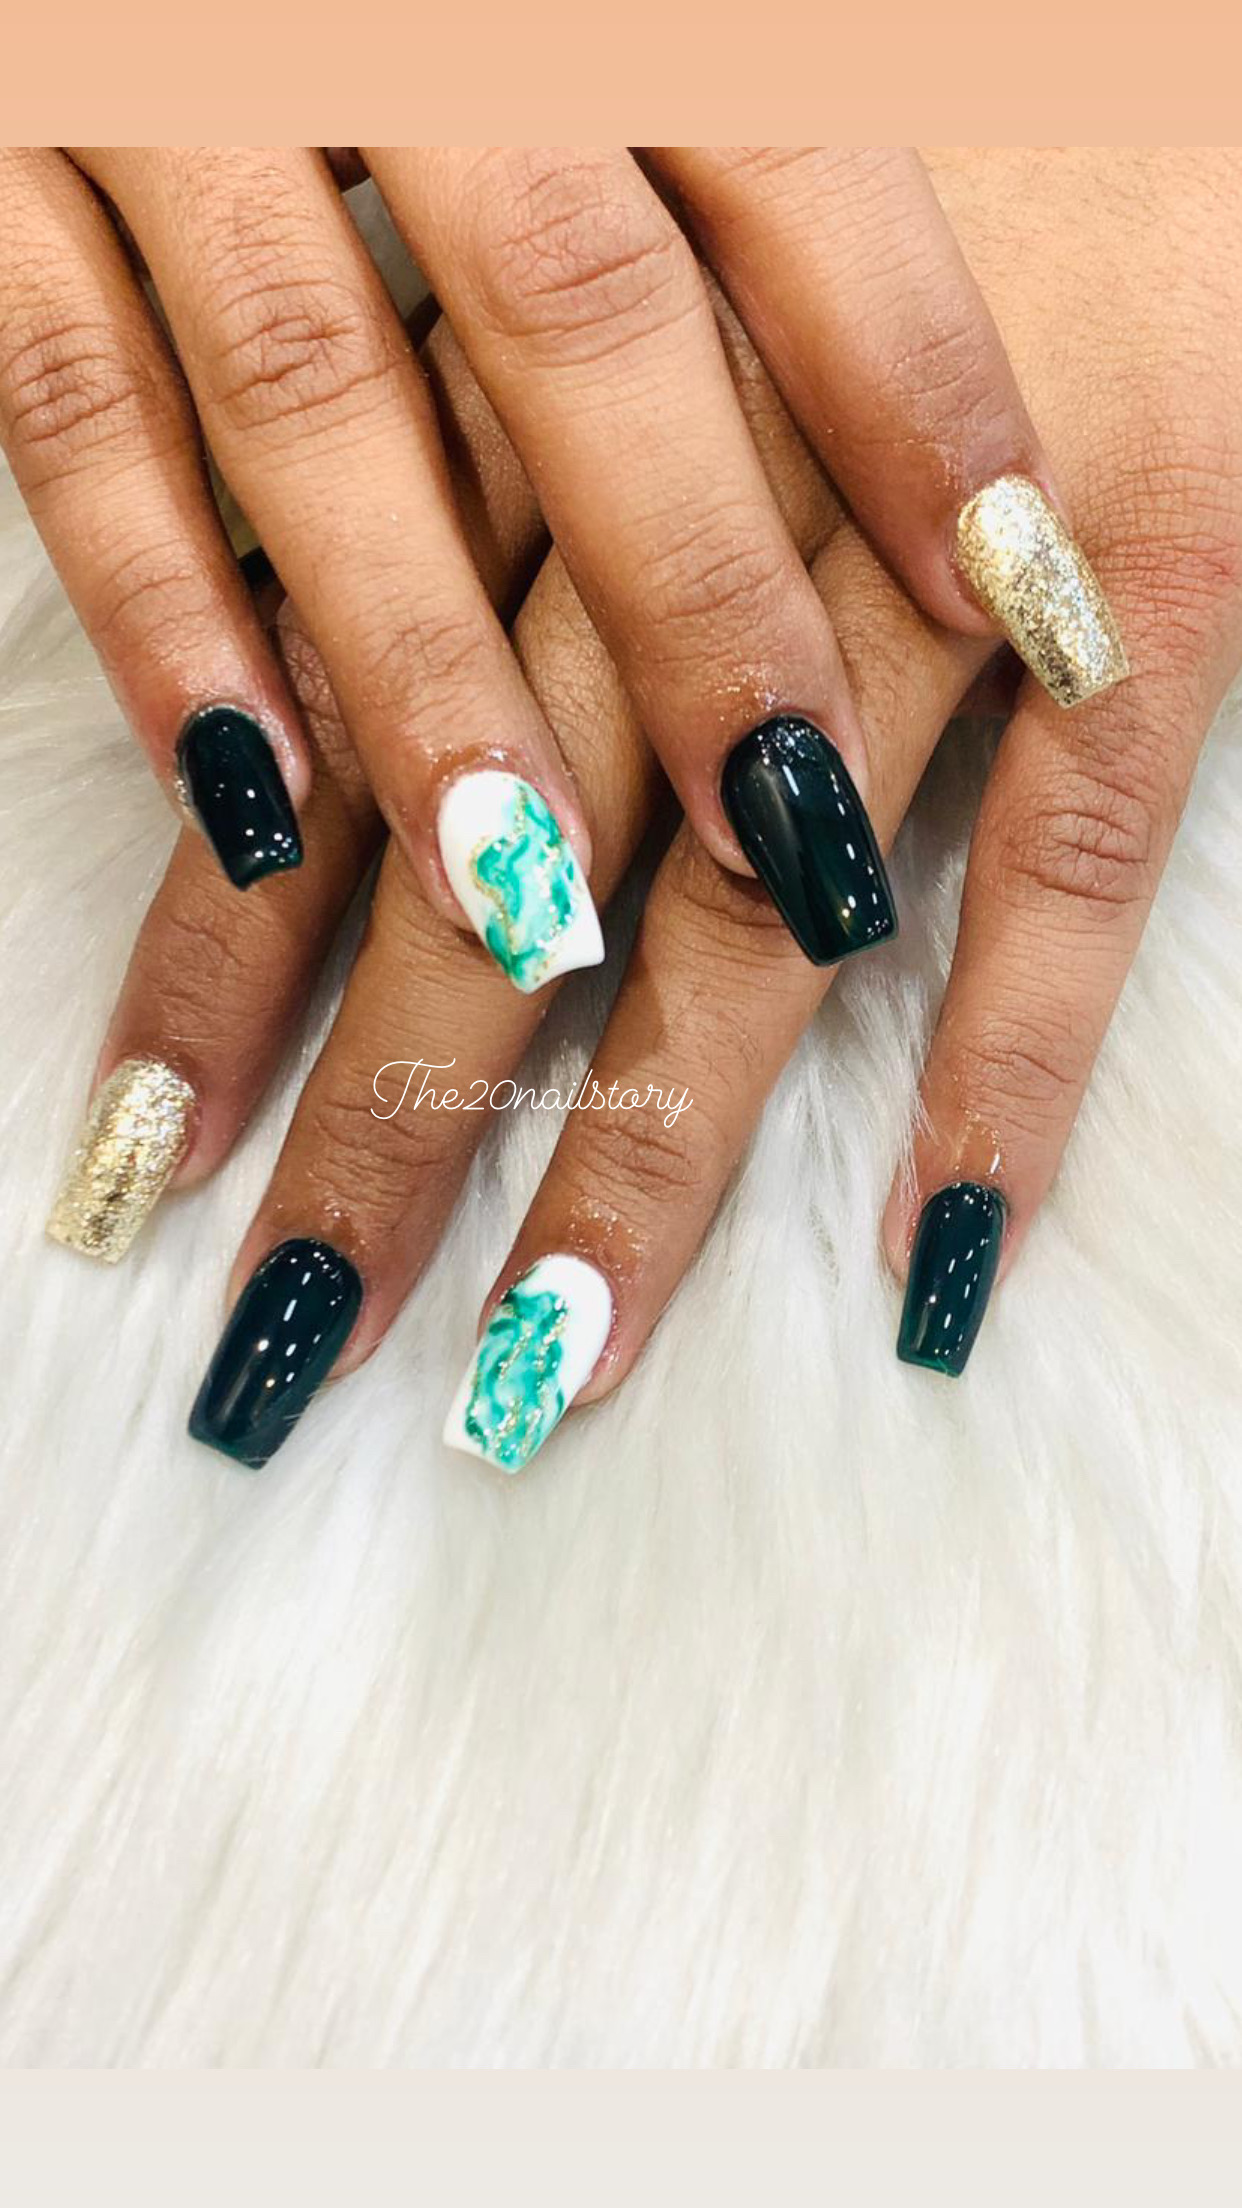 golden, white and black color nail art